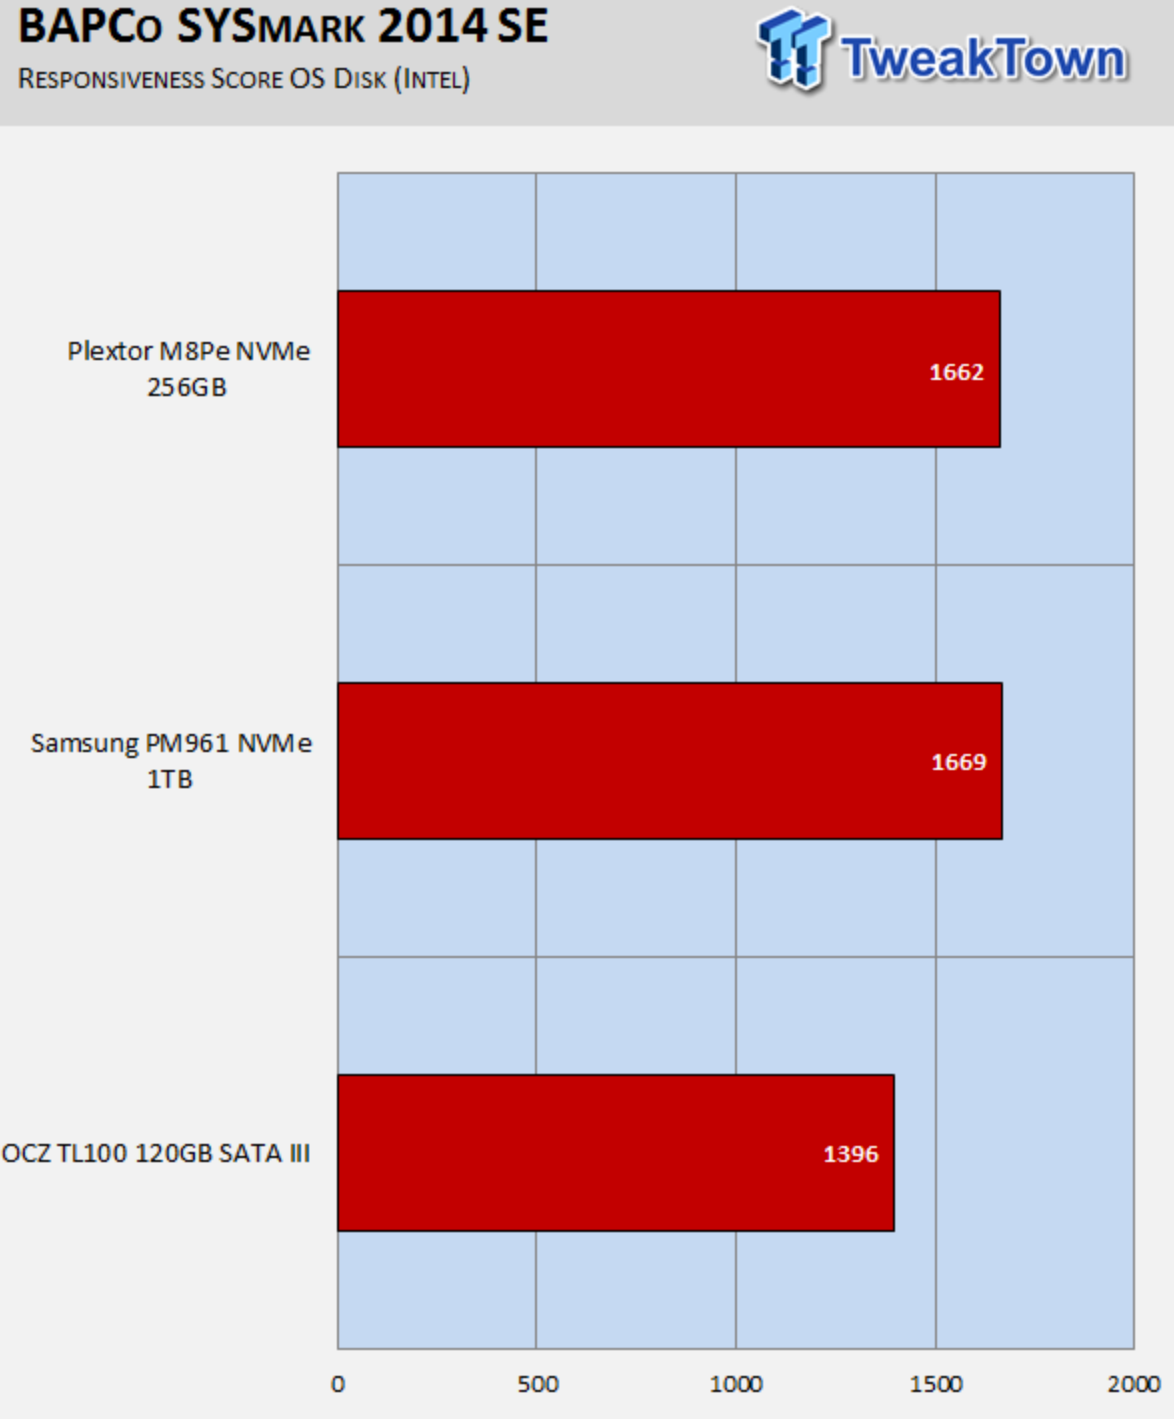 TweakTown: Plextor M8PeY M.2 with AIC NVMe PCIe SSD Review using BAPCo's SYSmark 2014 SE Benchmark